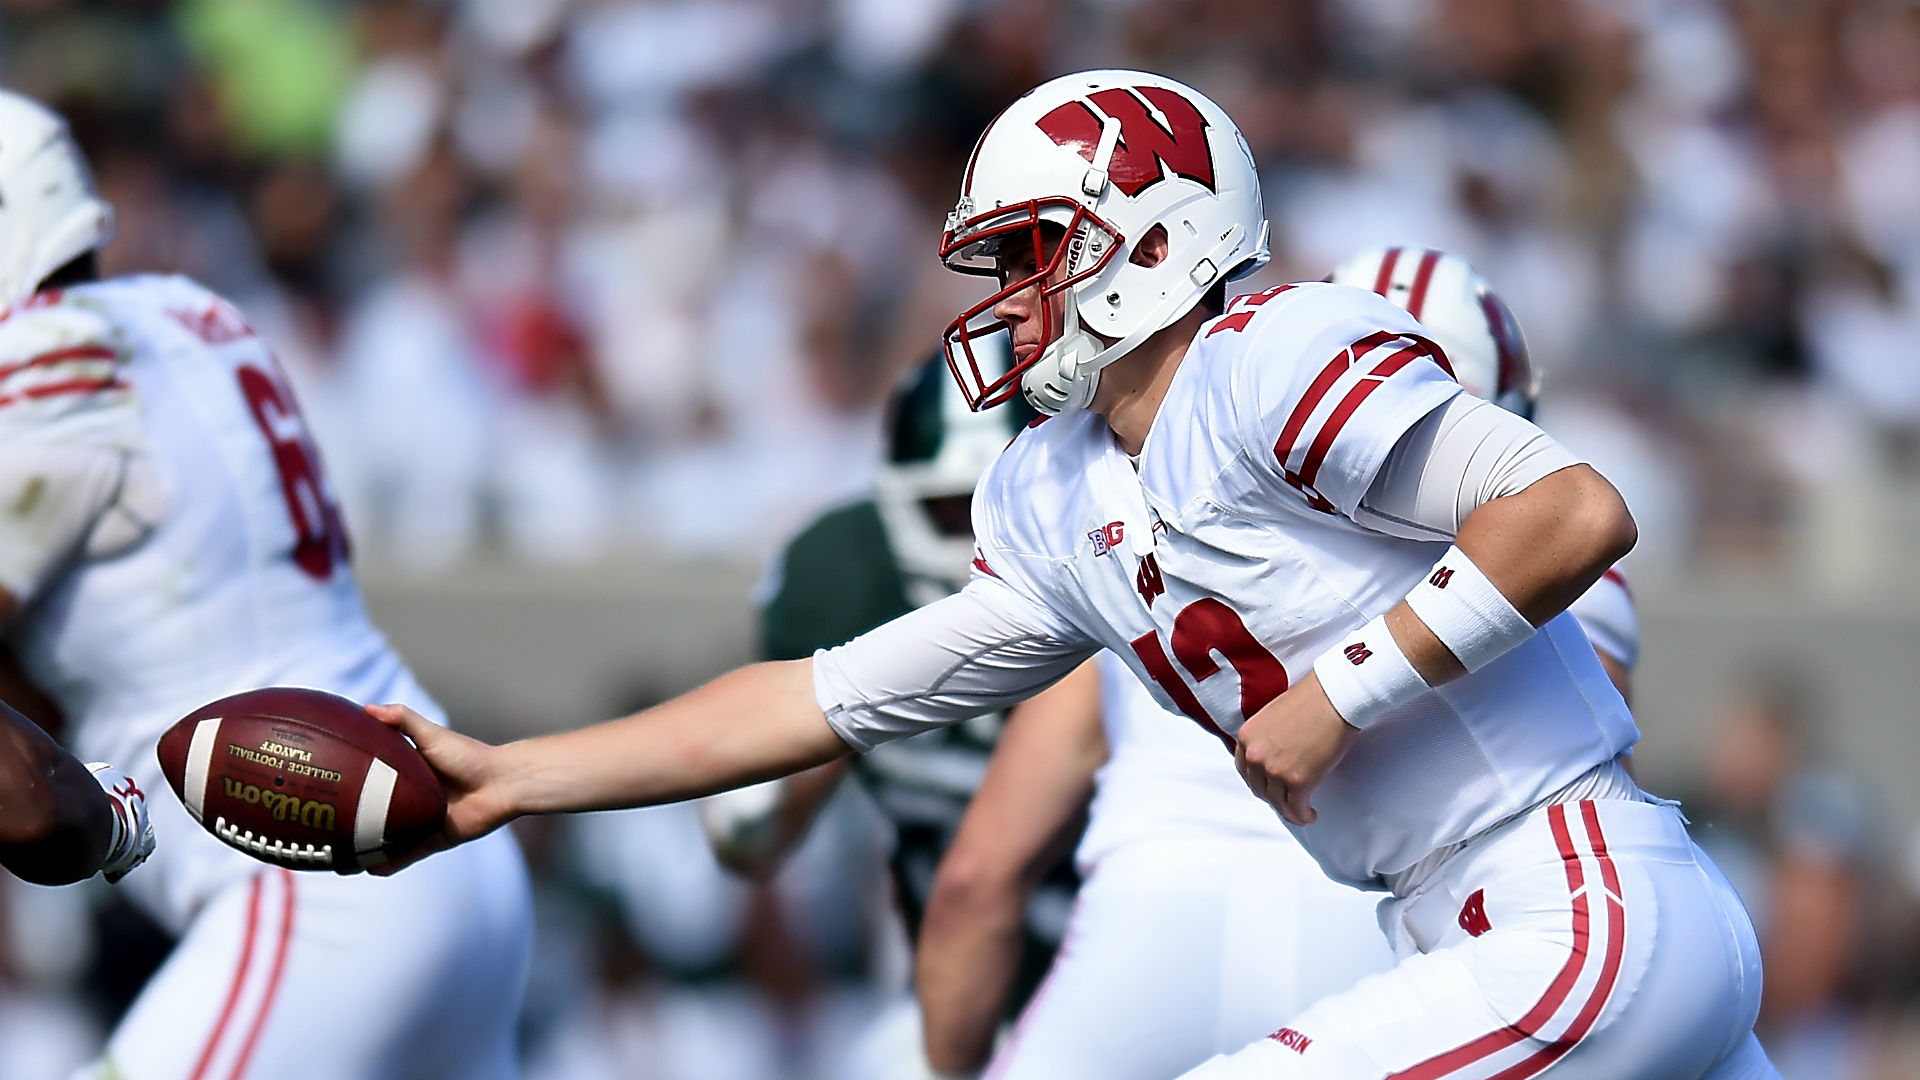 wisconsin football schedule, roster and three things to watch ncaawisconsin alex hornibrook getty ftr jpg